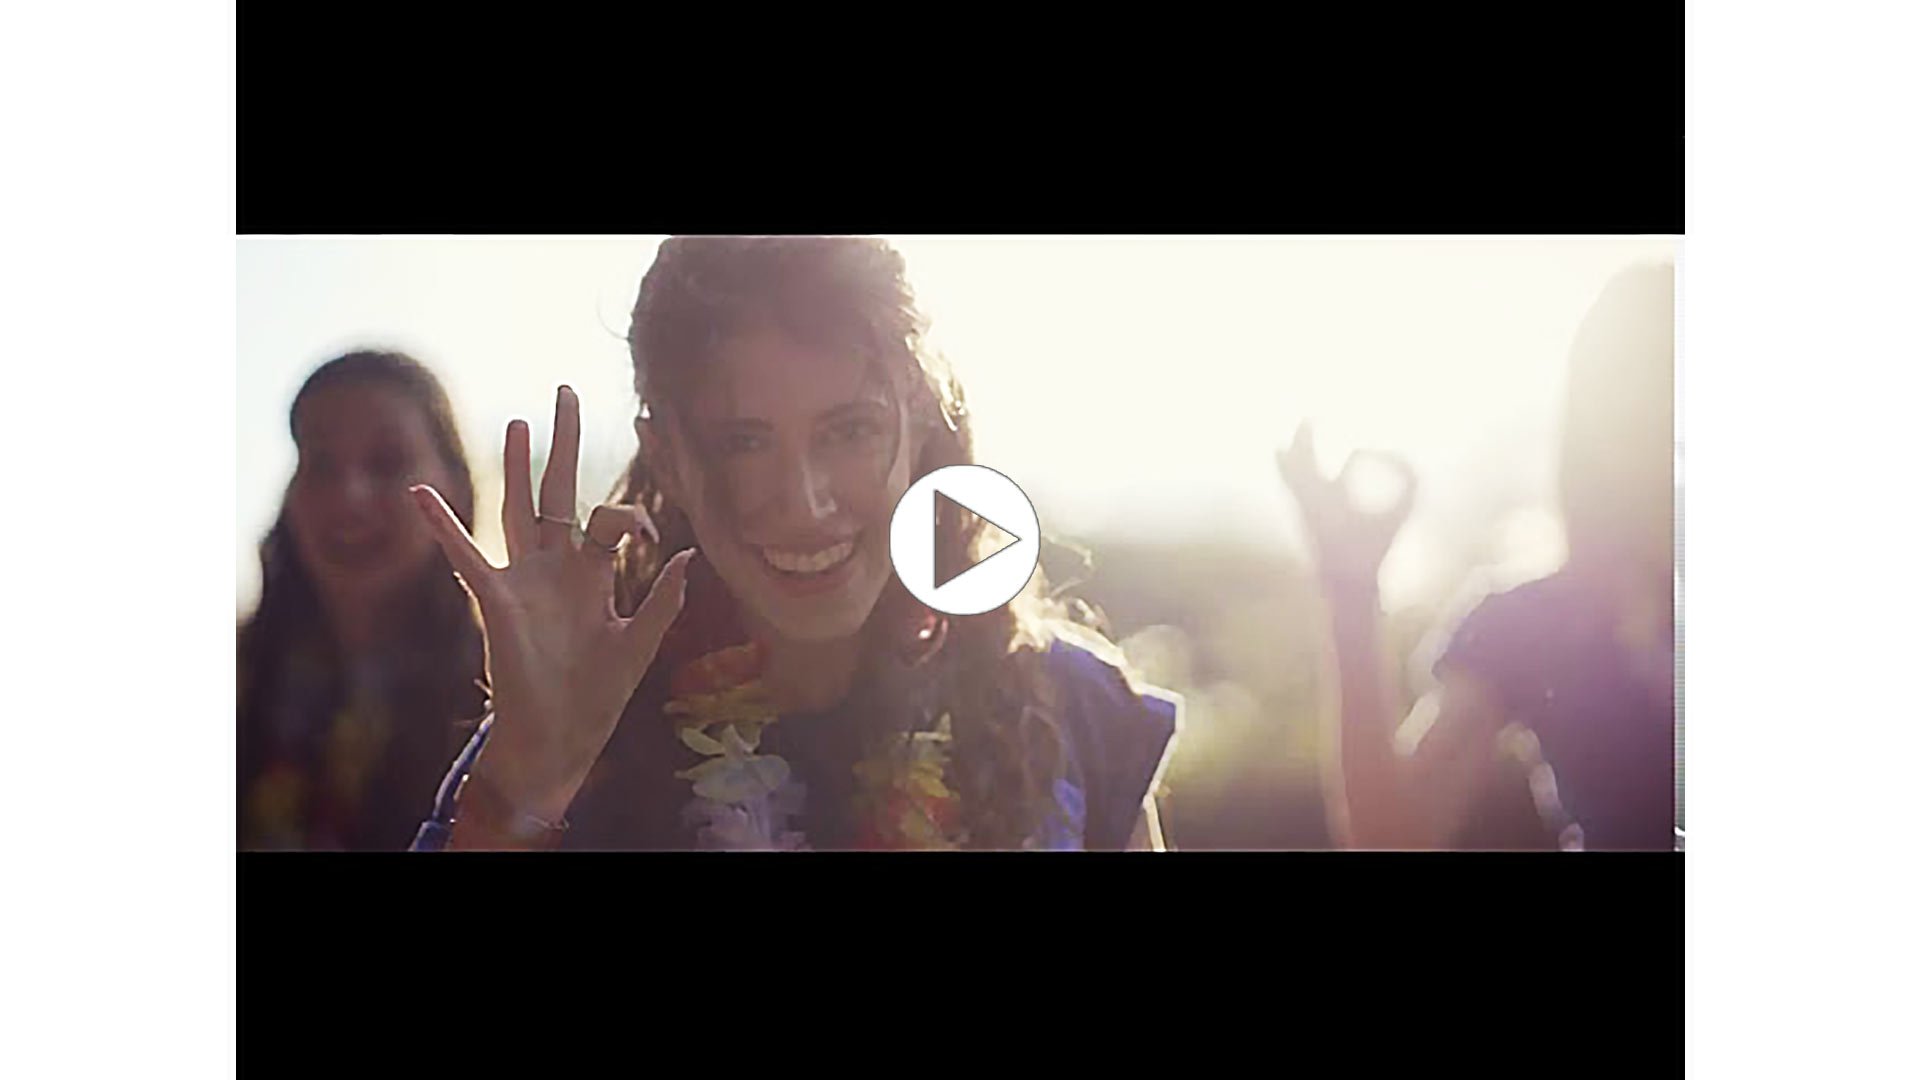 FRASSI - UNDICI (OFFICIAL VIDEO) - youtube